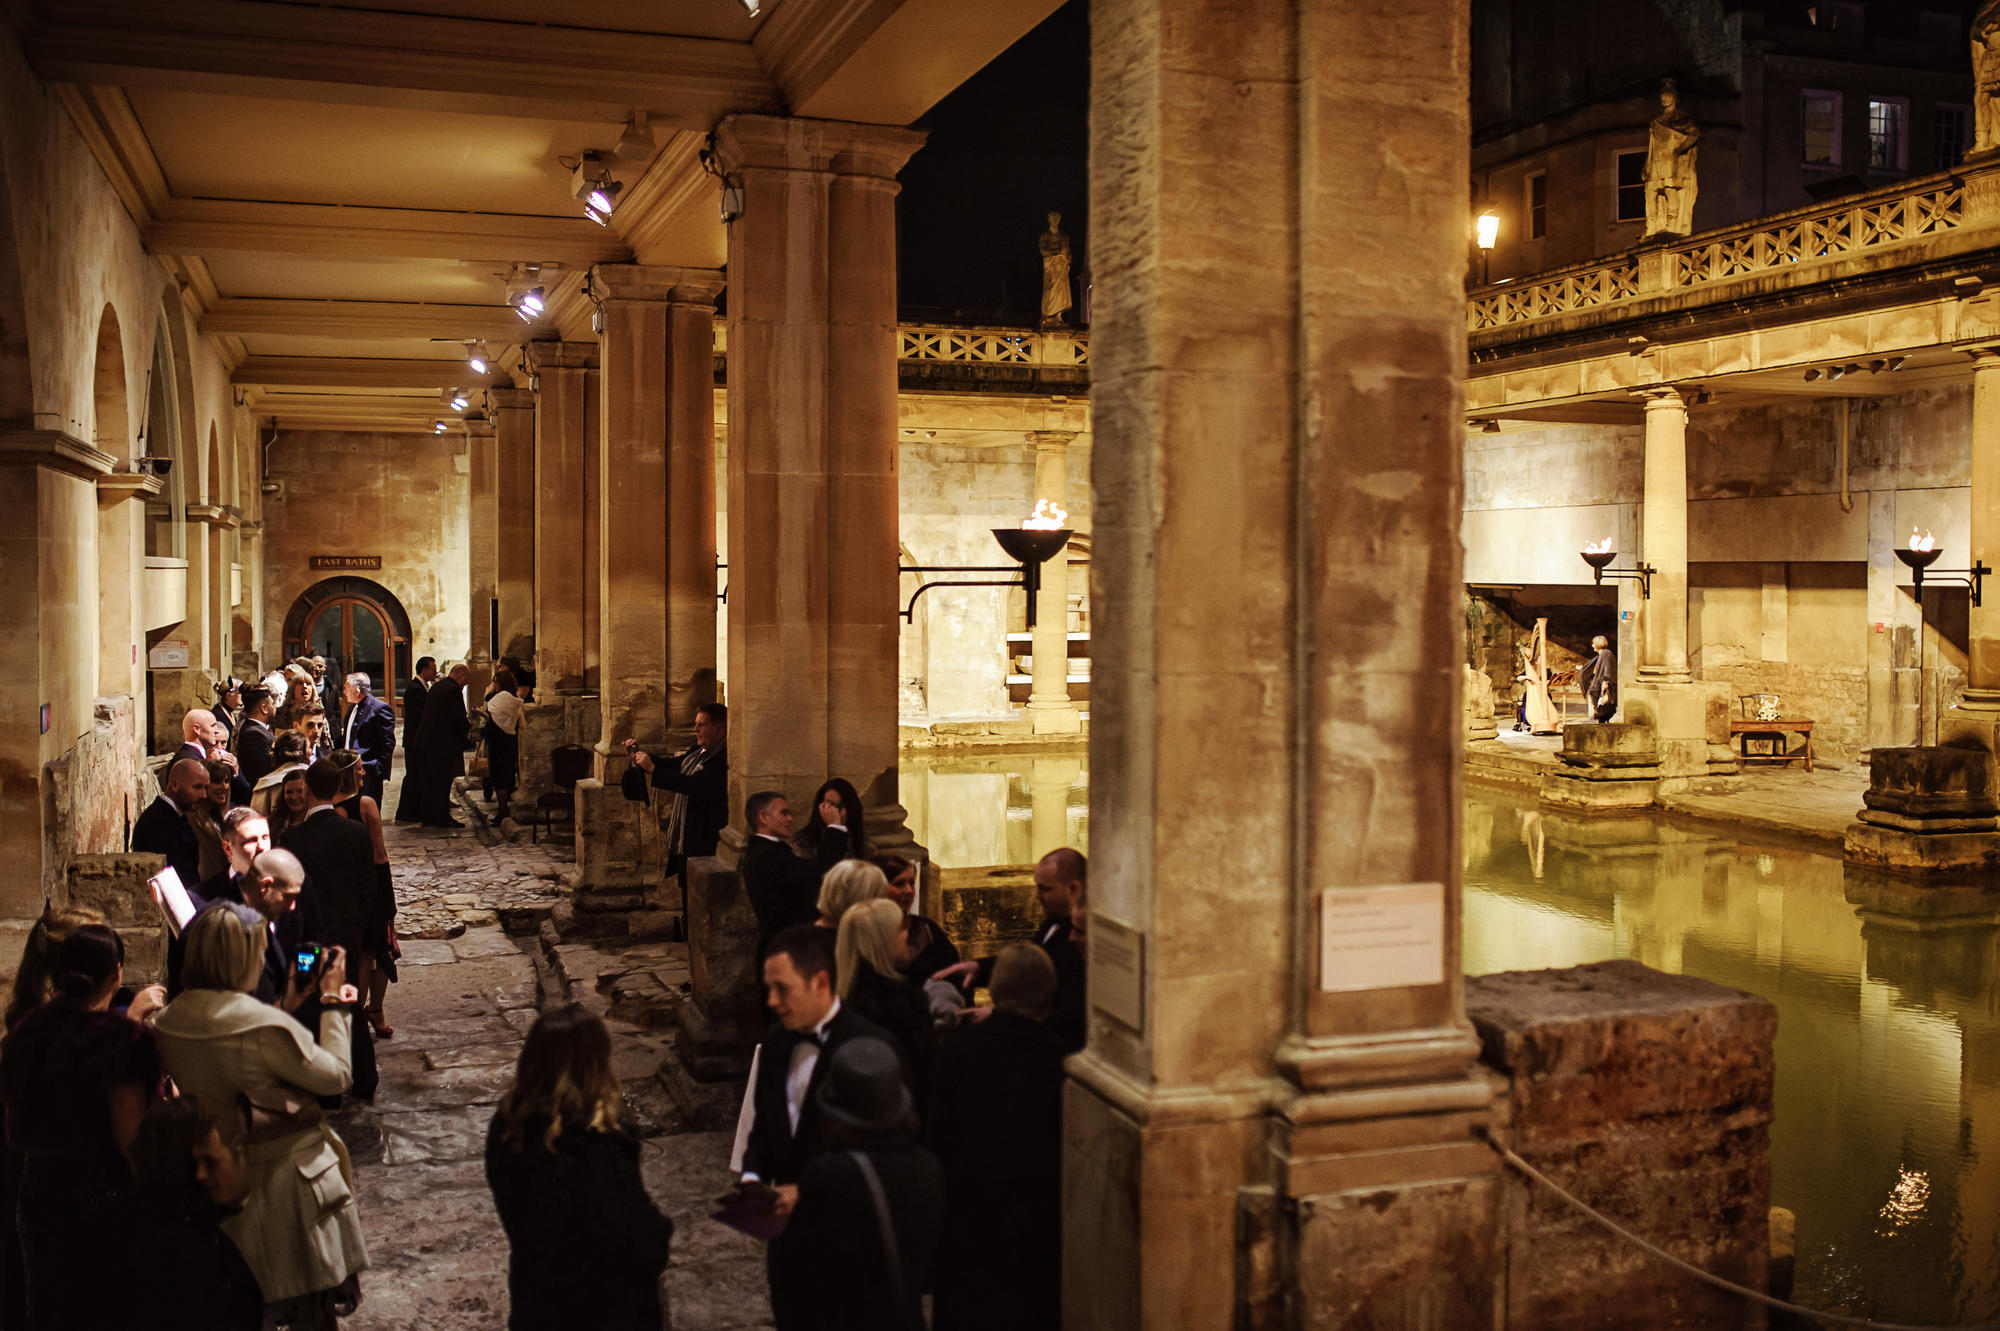 Image: Drinks at the Roman Baths